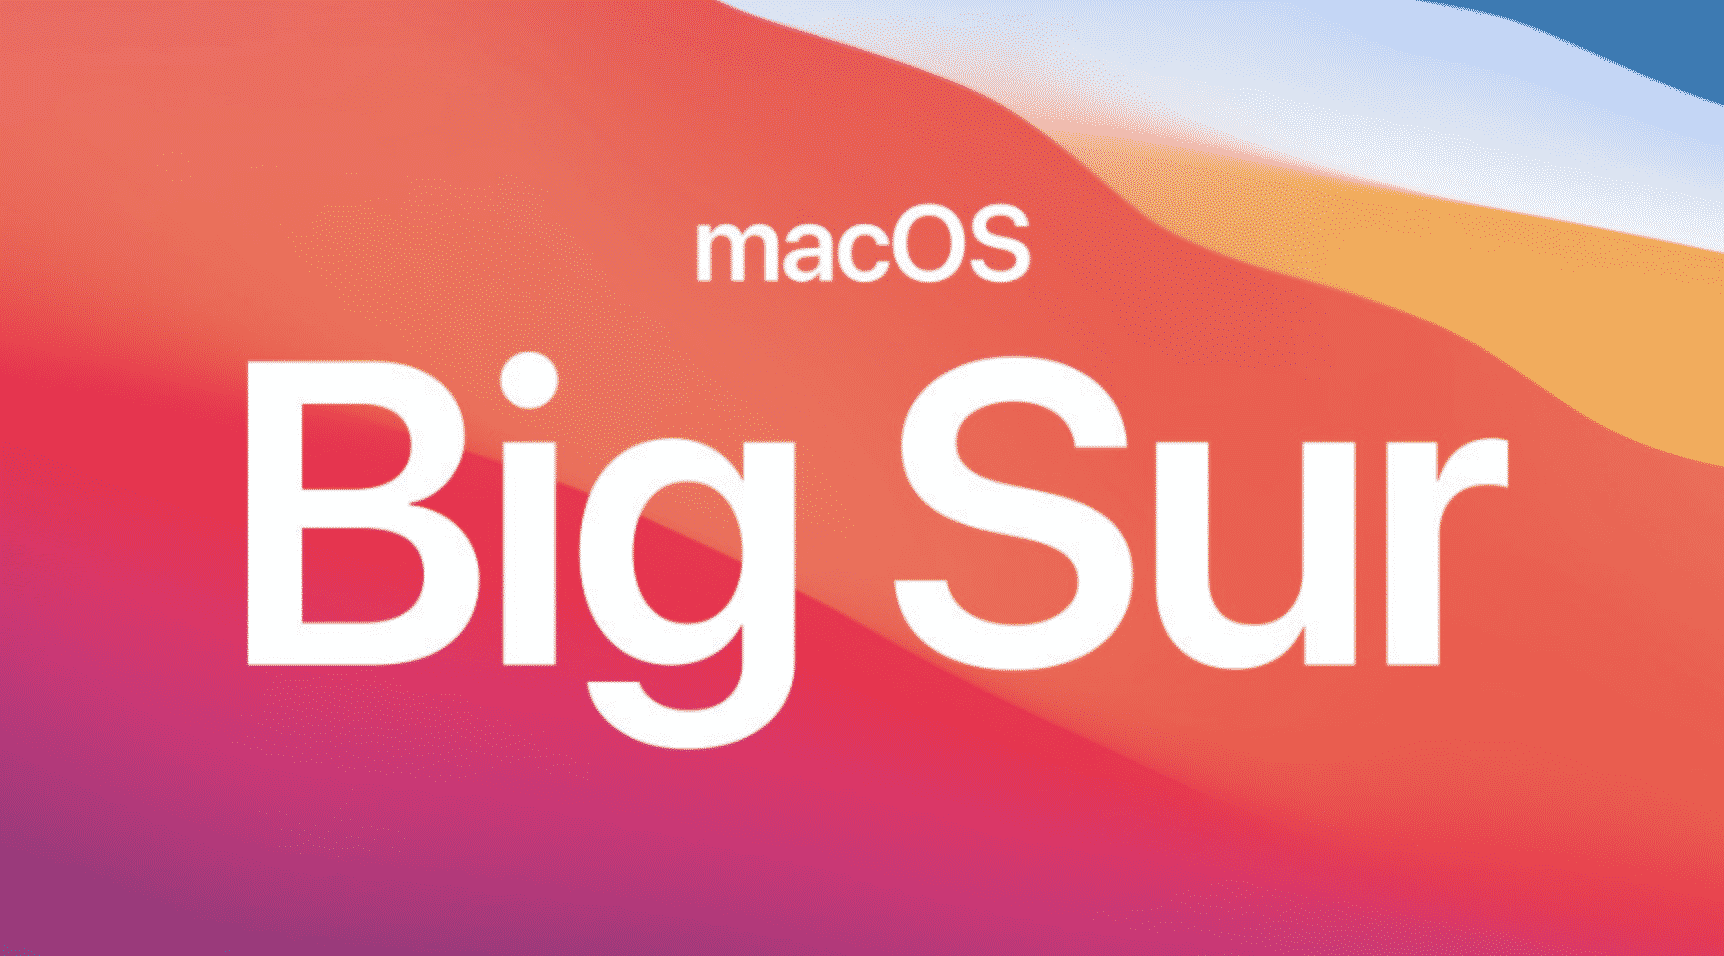 macOS Big Sur 2nd build 11.3 beta now available